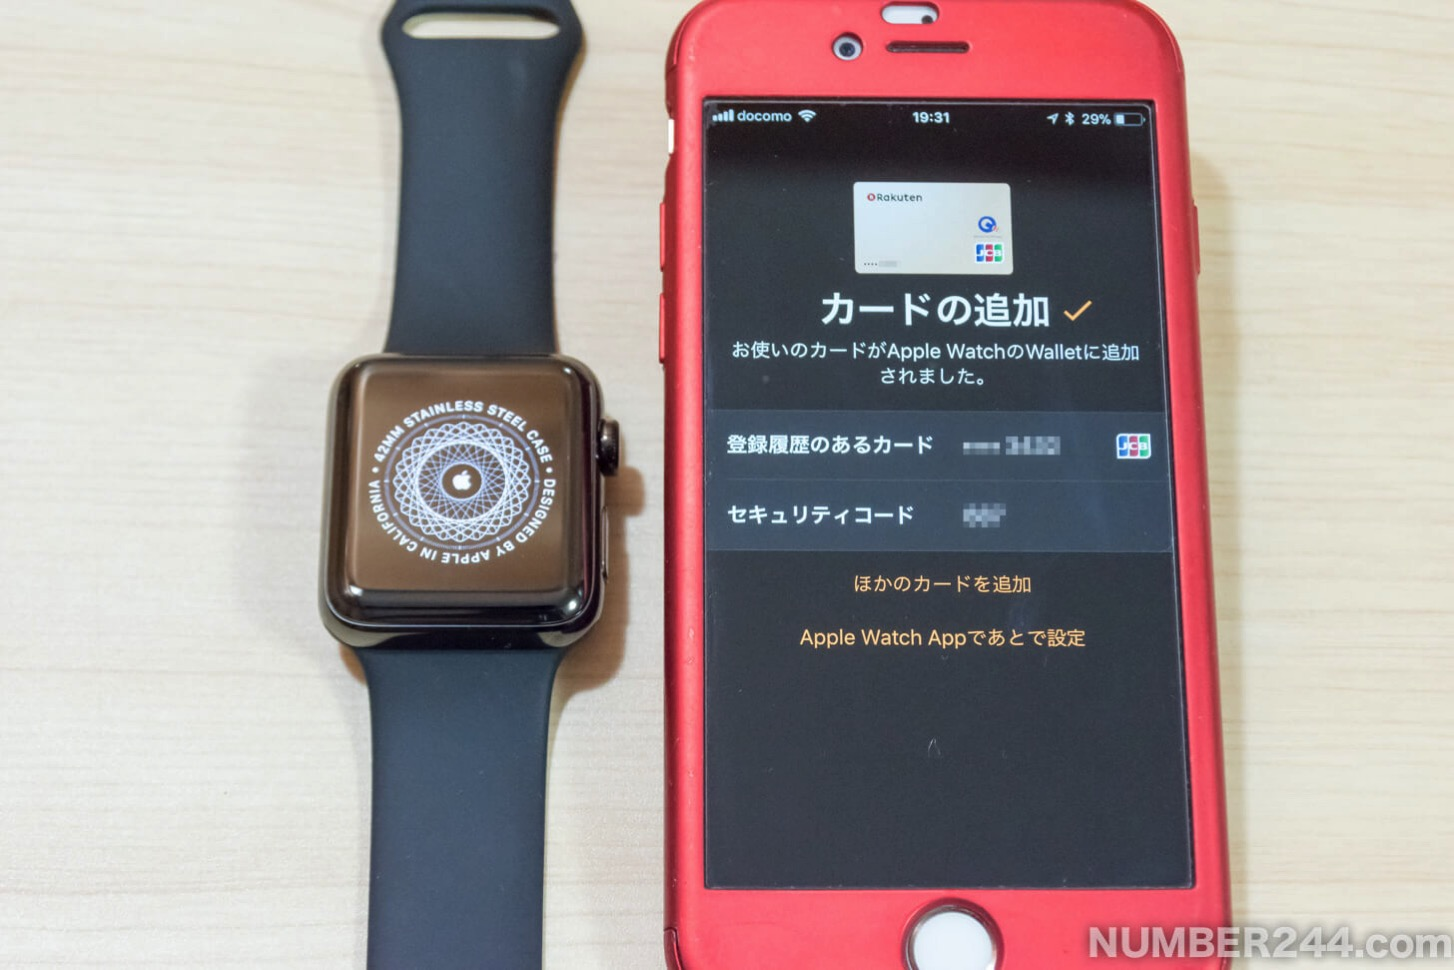 Initial setting of Apple Watch 16